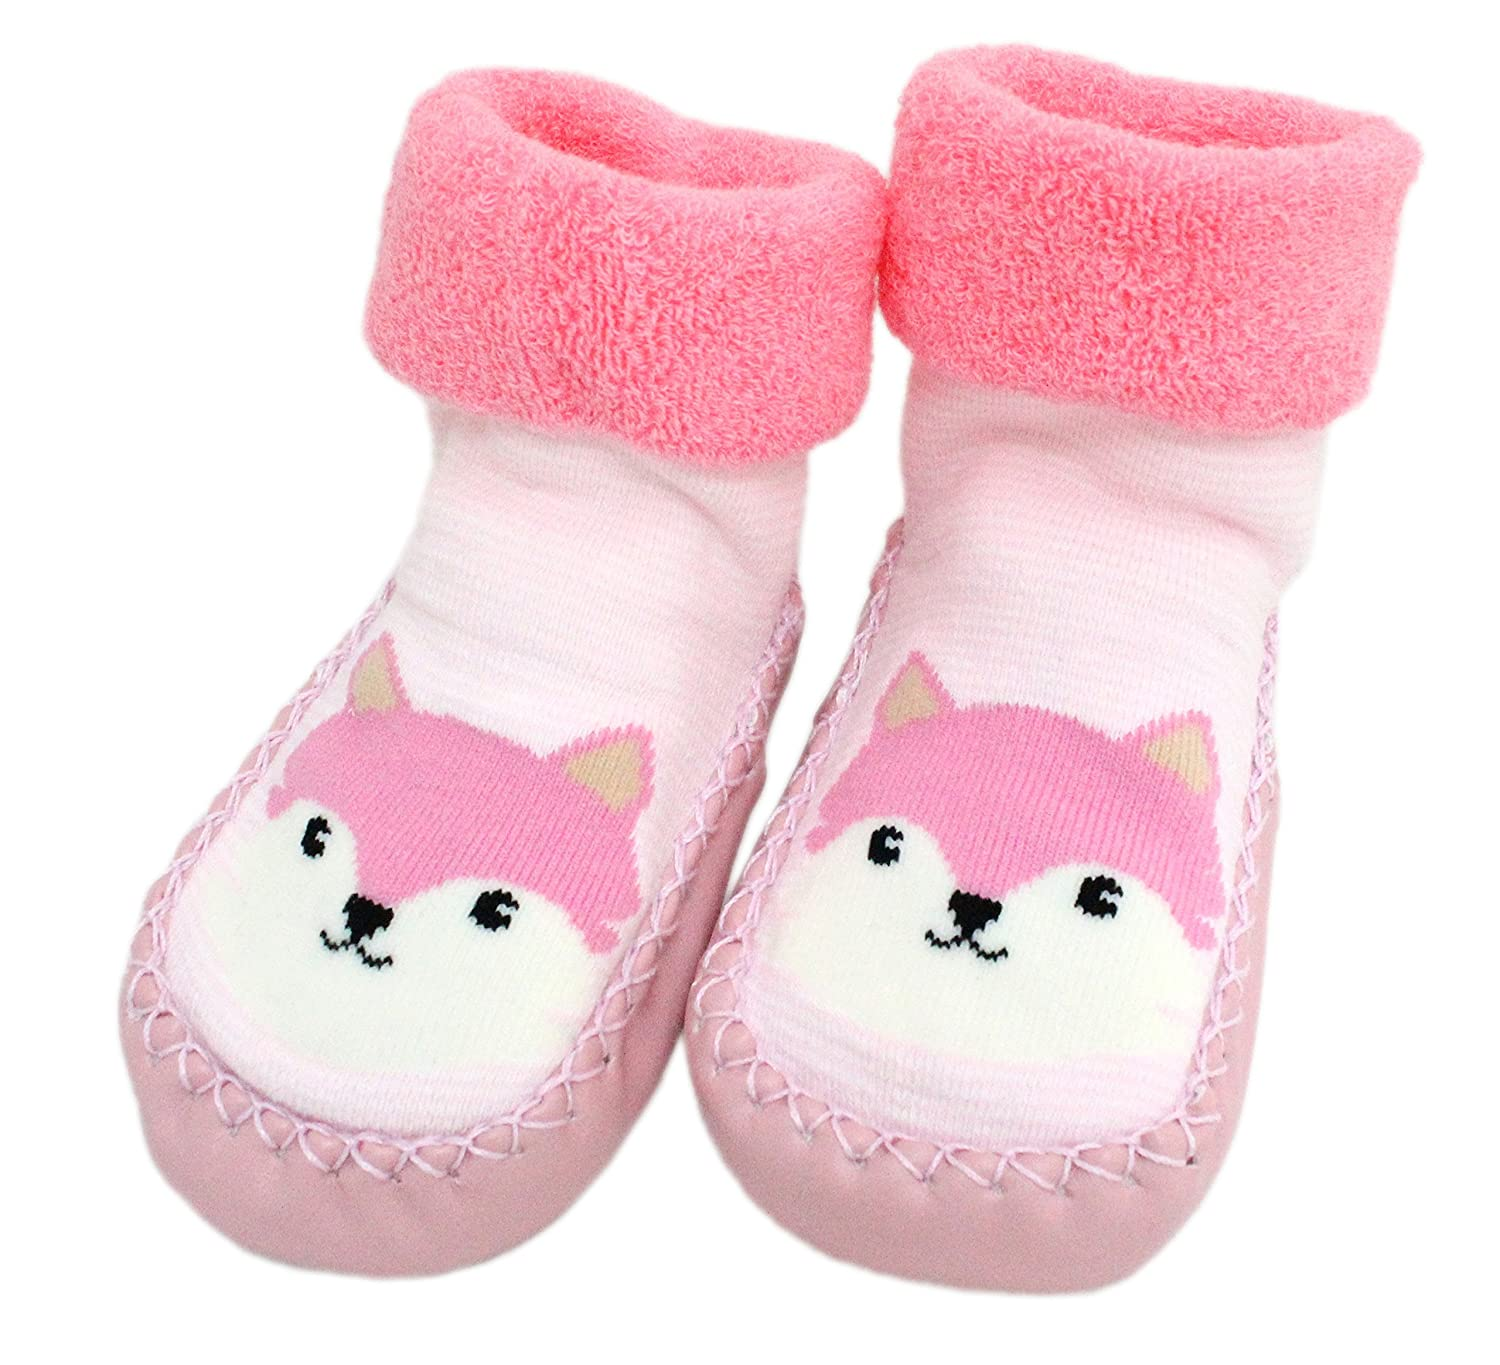 Baby Girls Winter Indoor Slipper Socks Anti-slip Pink Striped Fox 3-24 Months